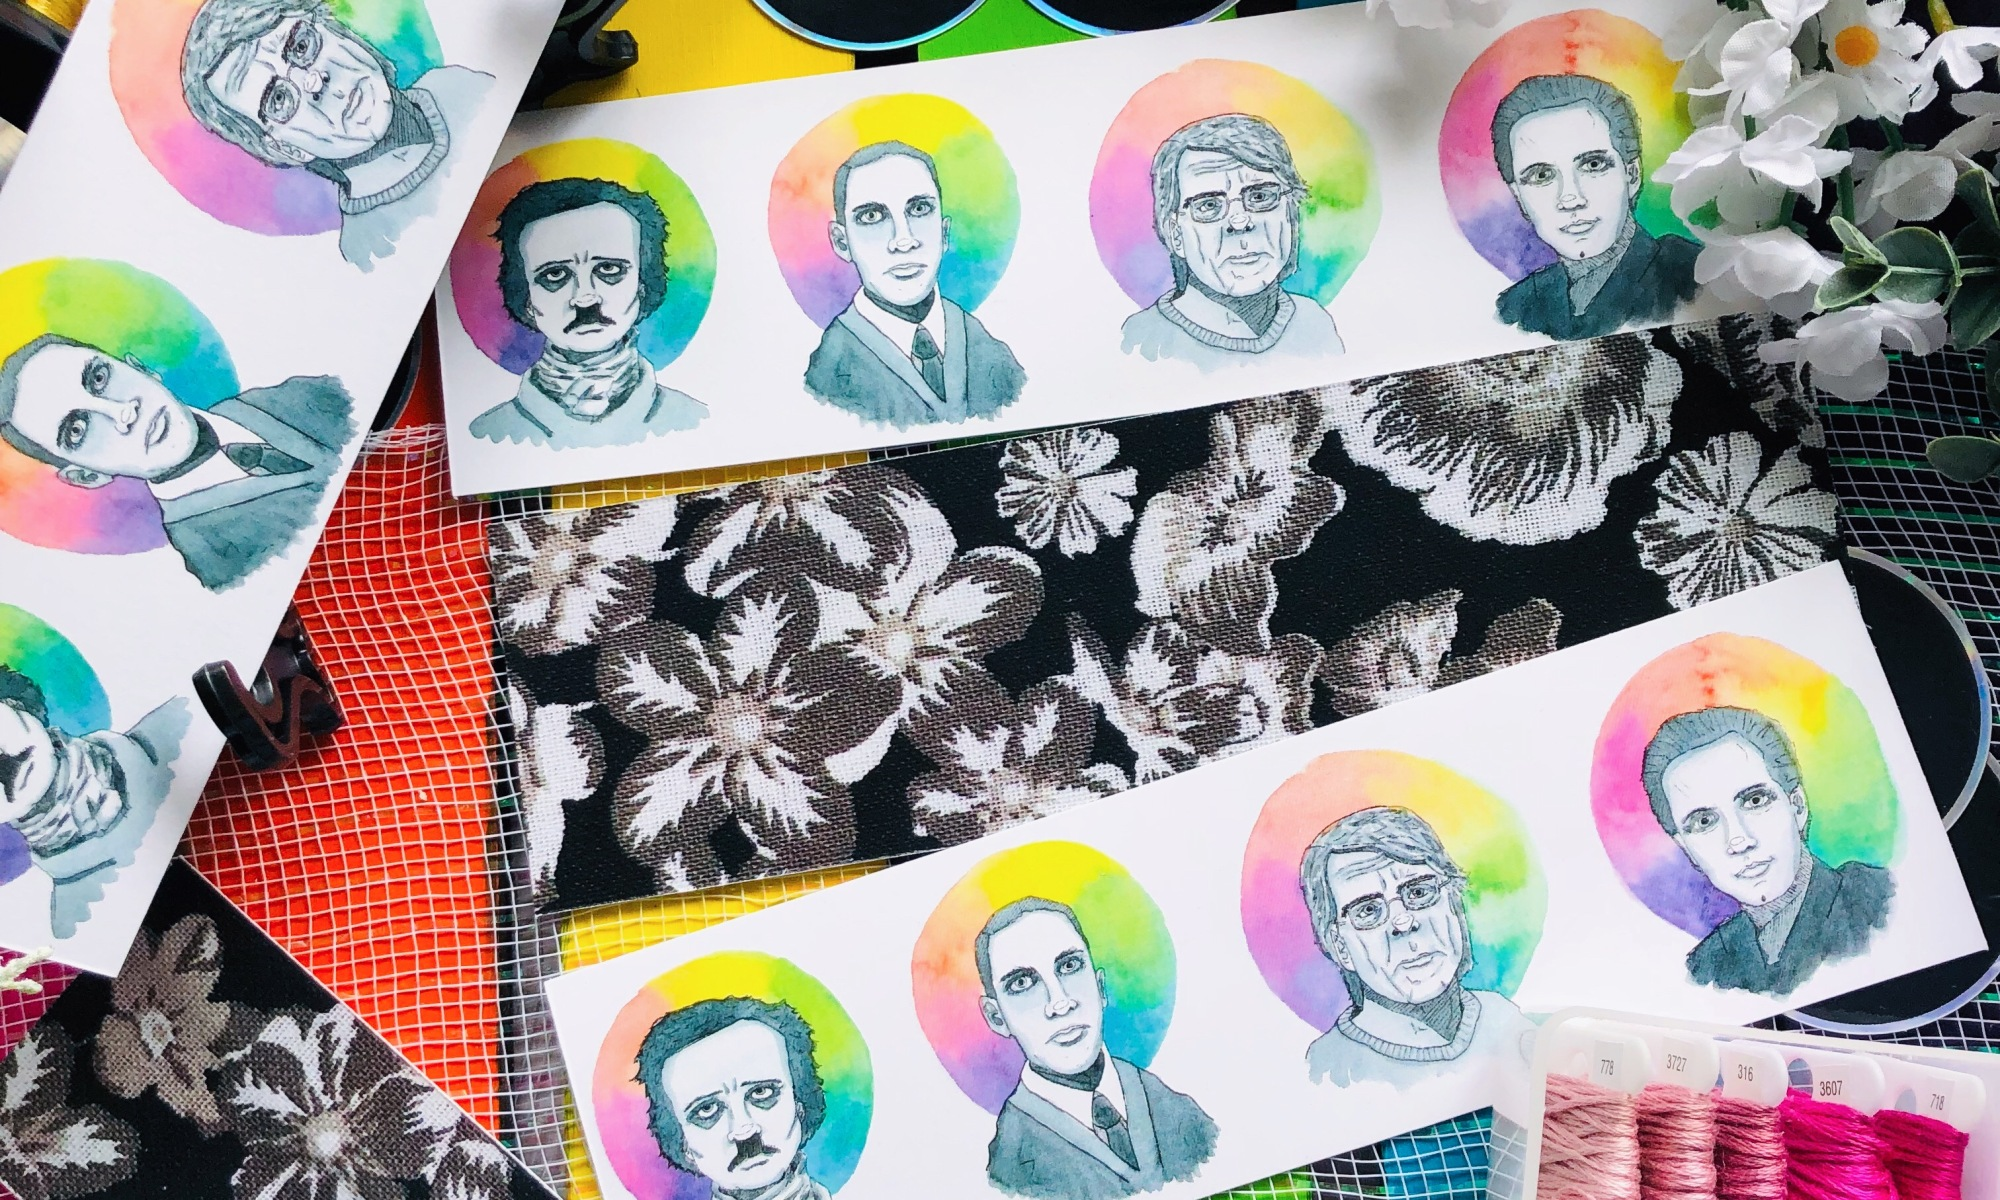 Stephen King, Edgar Allan Poe, Lovecraft, Clive Barker portraits on bookmarks